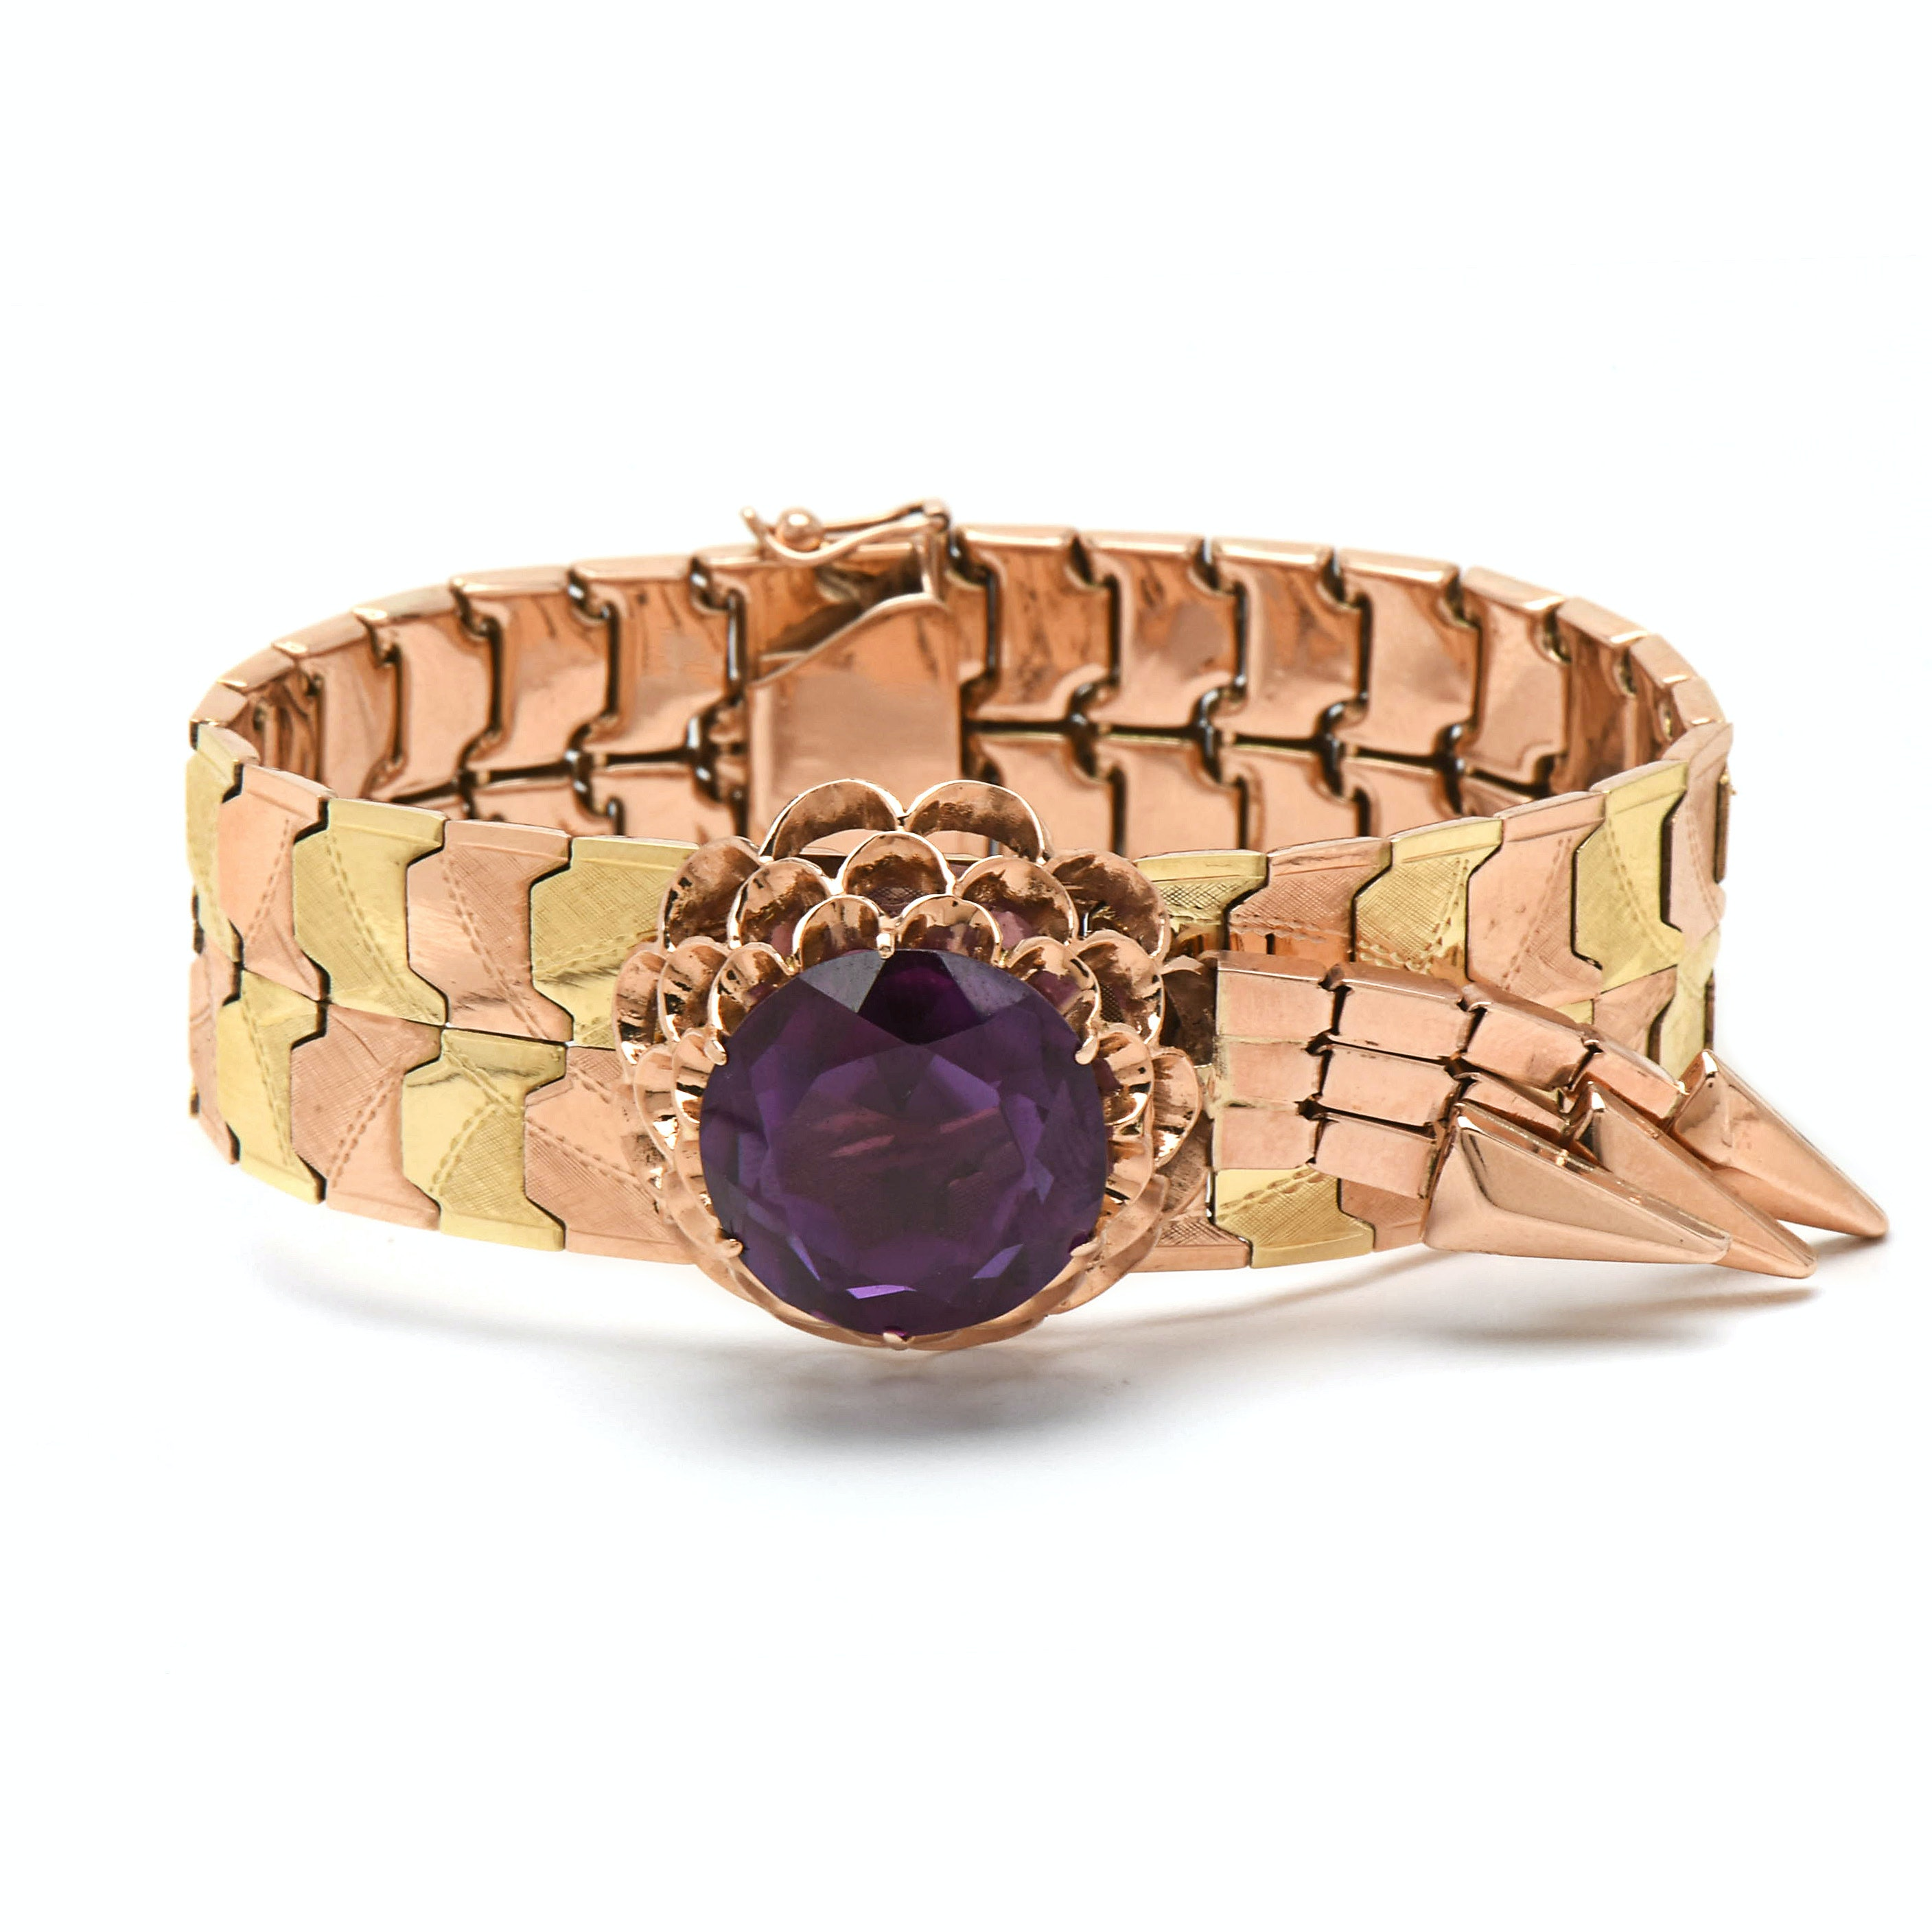 Circa 1950s 14K Rose and Green Gold Synthetic Color Change Sapphire Bracelet